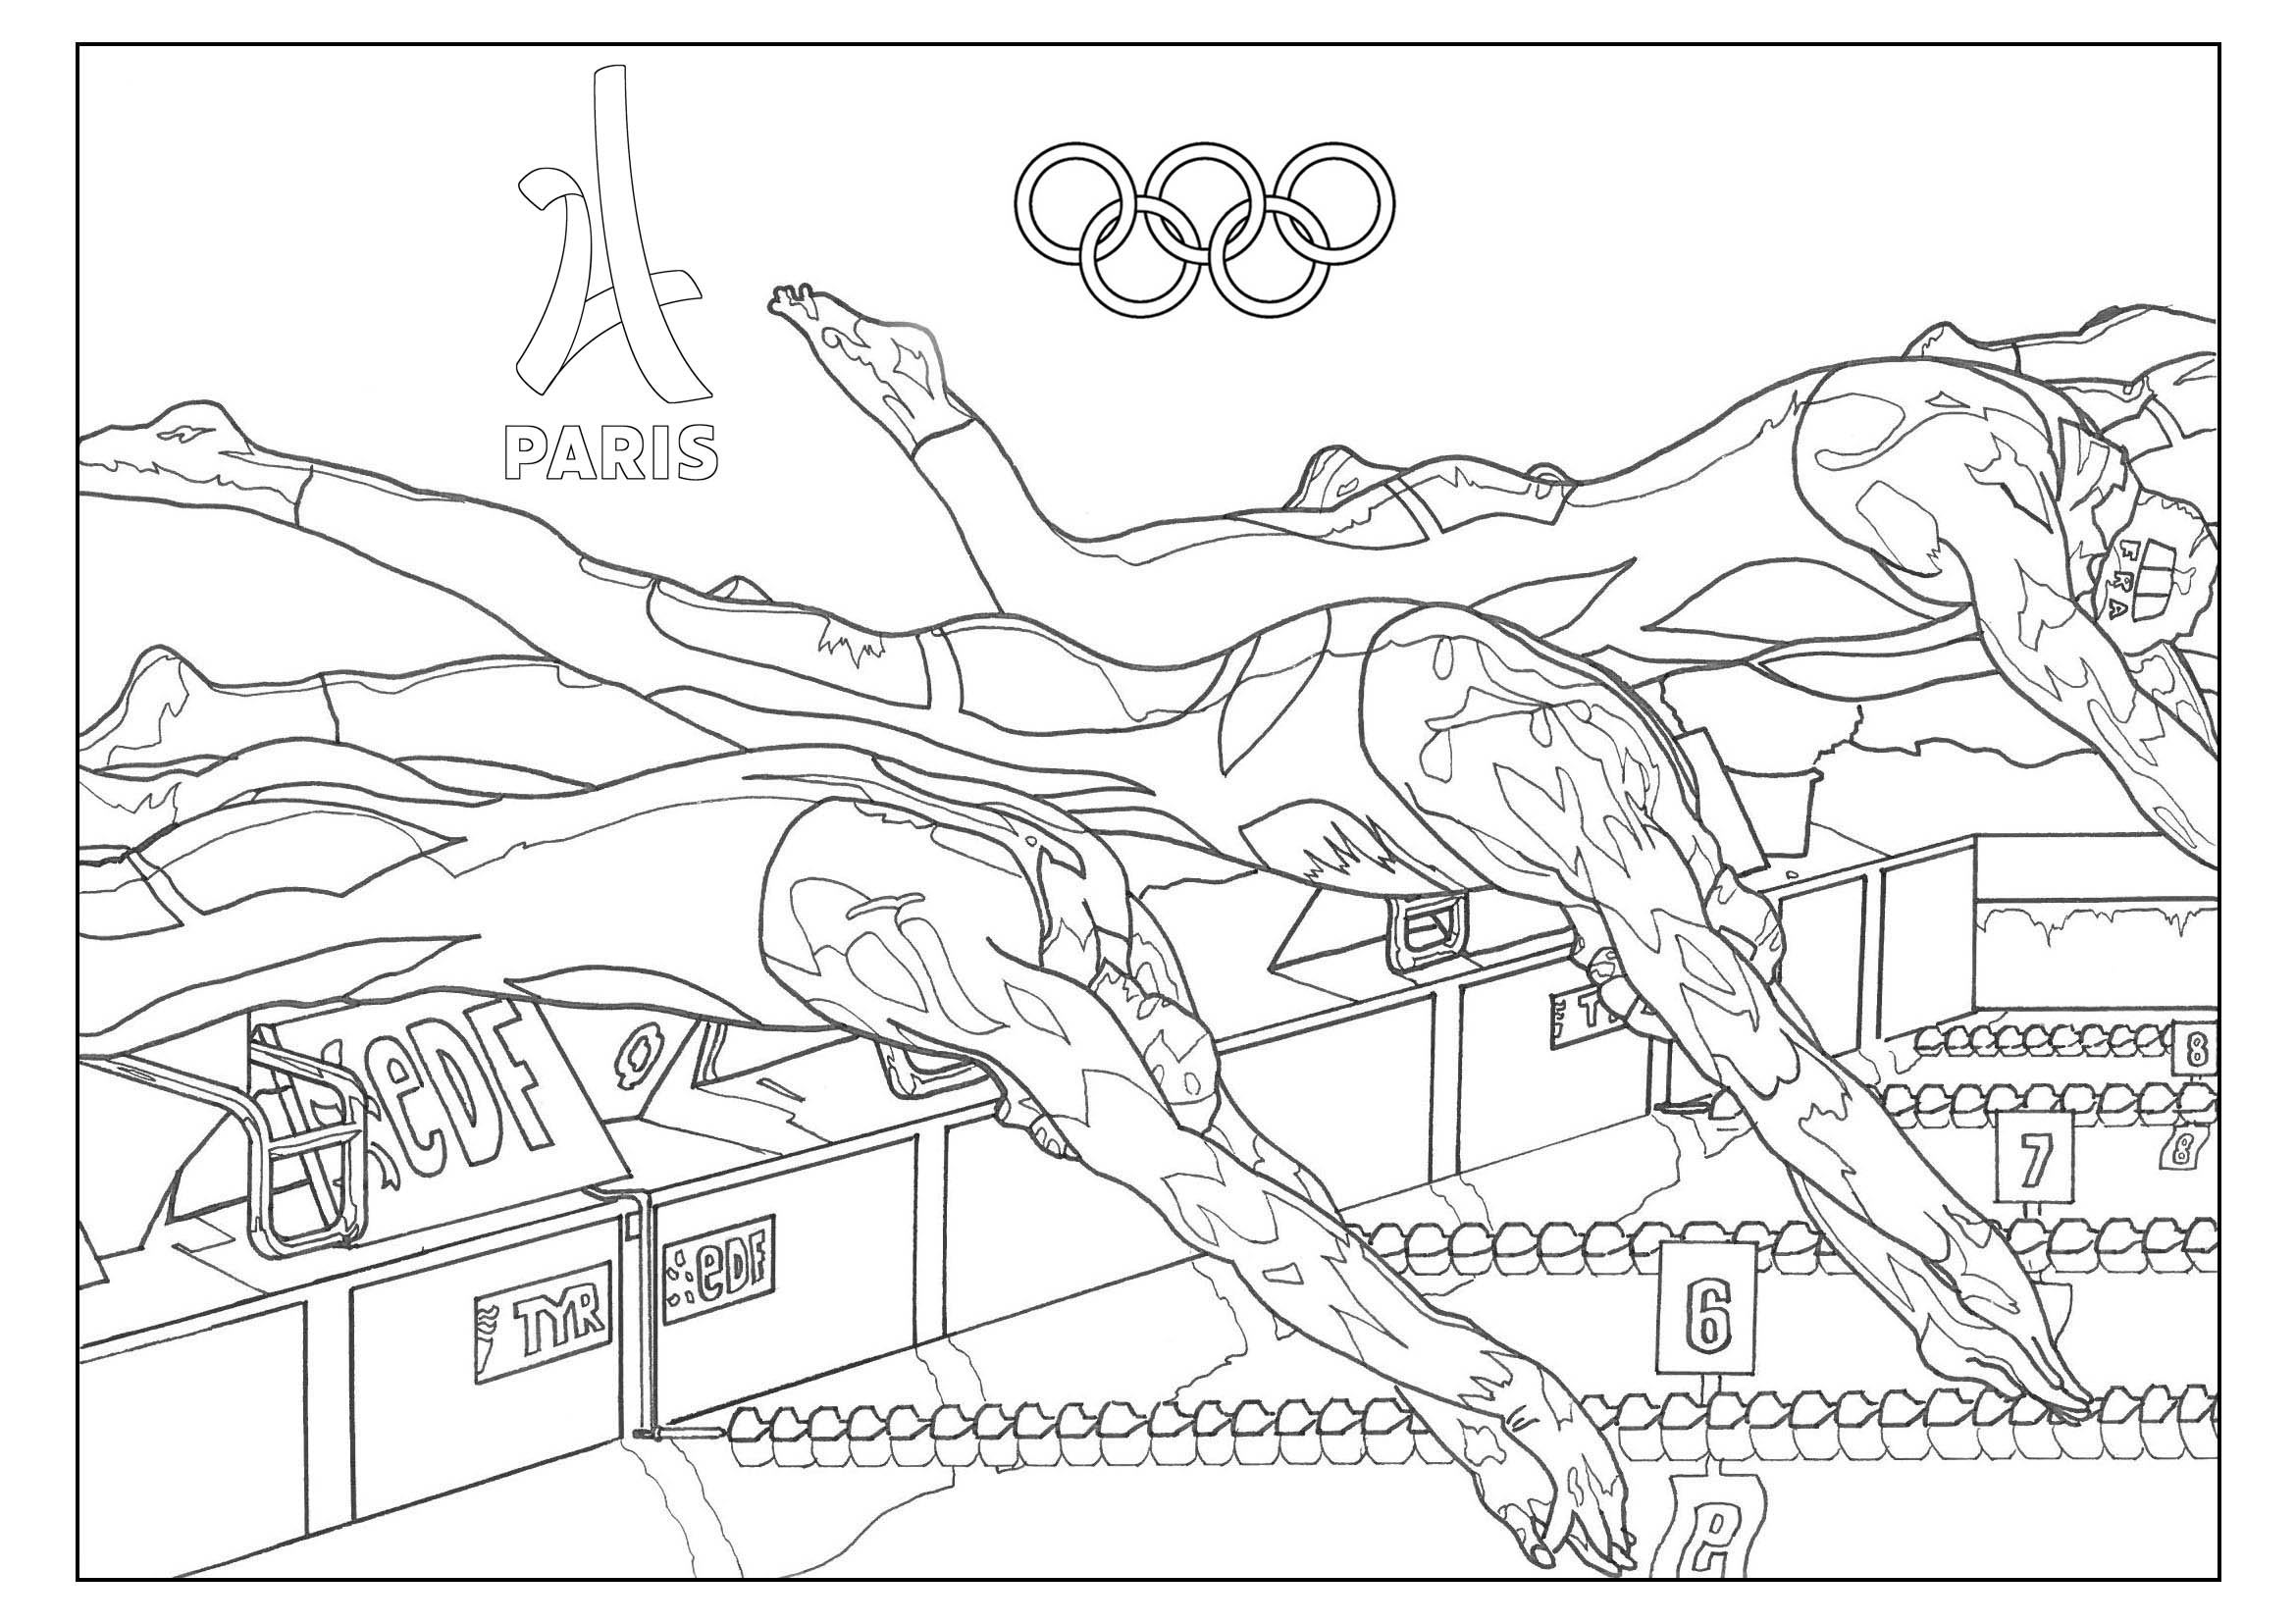 2340x1655 Olympic Games Swimming Paris 2024 Olympic (And Sport) Coloring